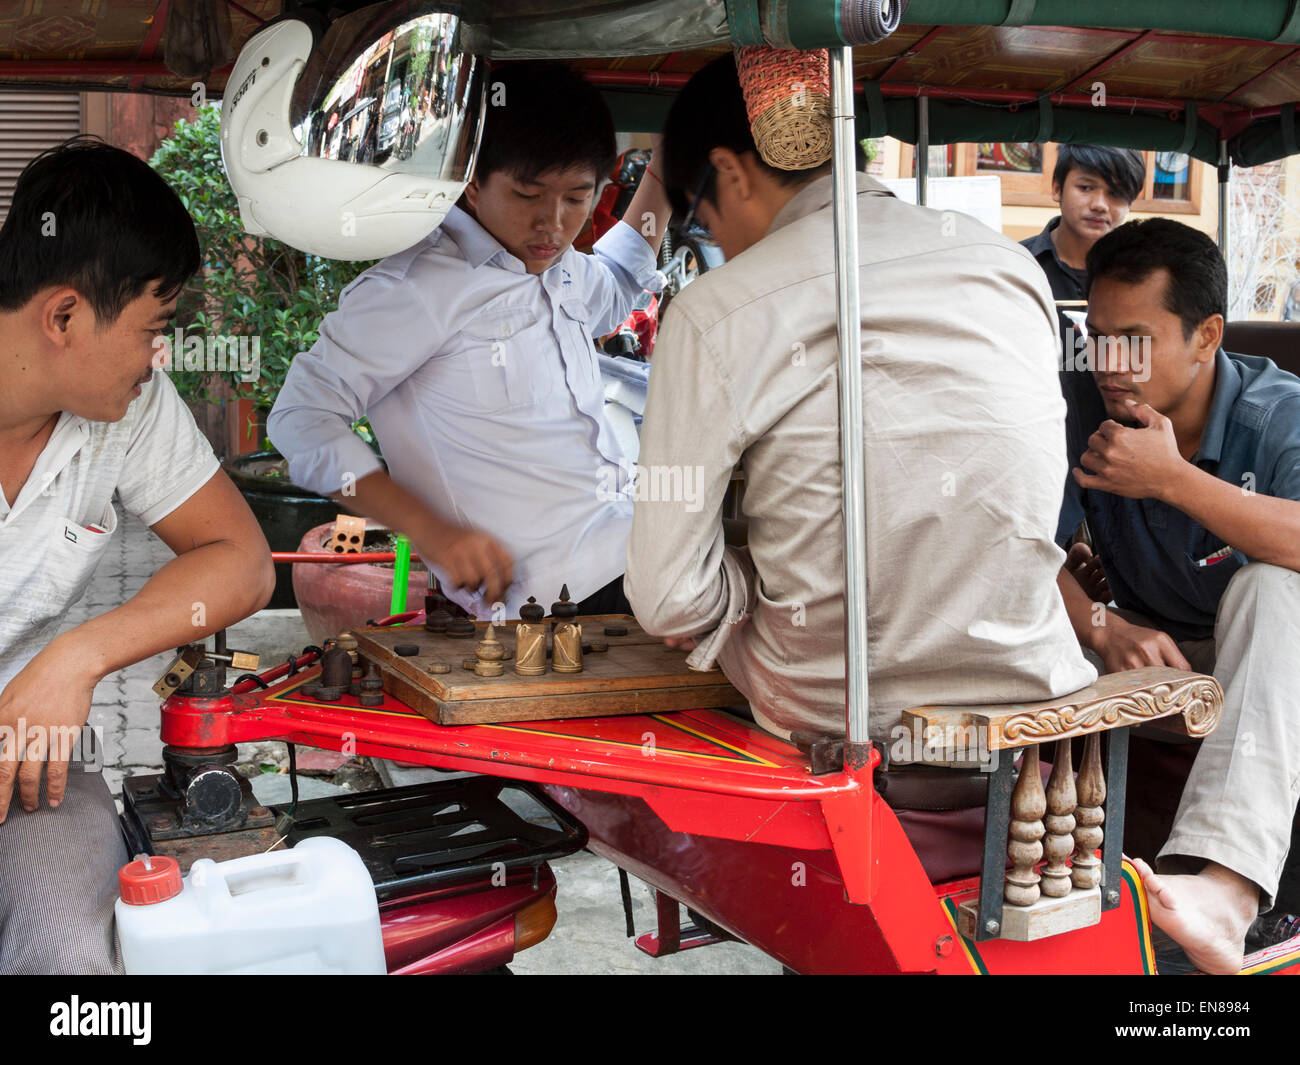 Cambodian taxi drivers play chess In Phnom Penh, Cambodia, Asia. - Stock Image